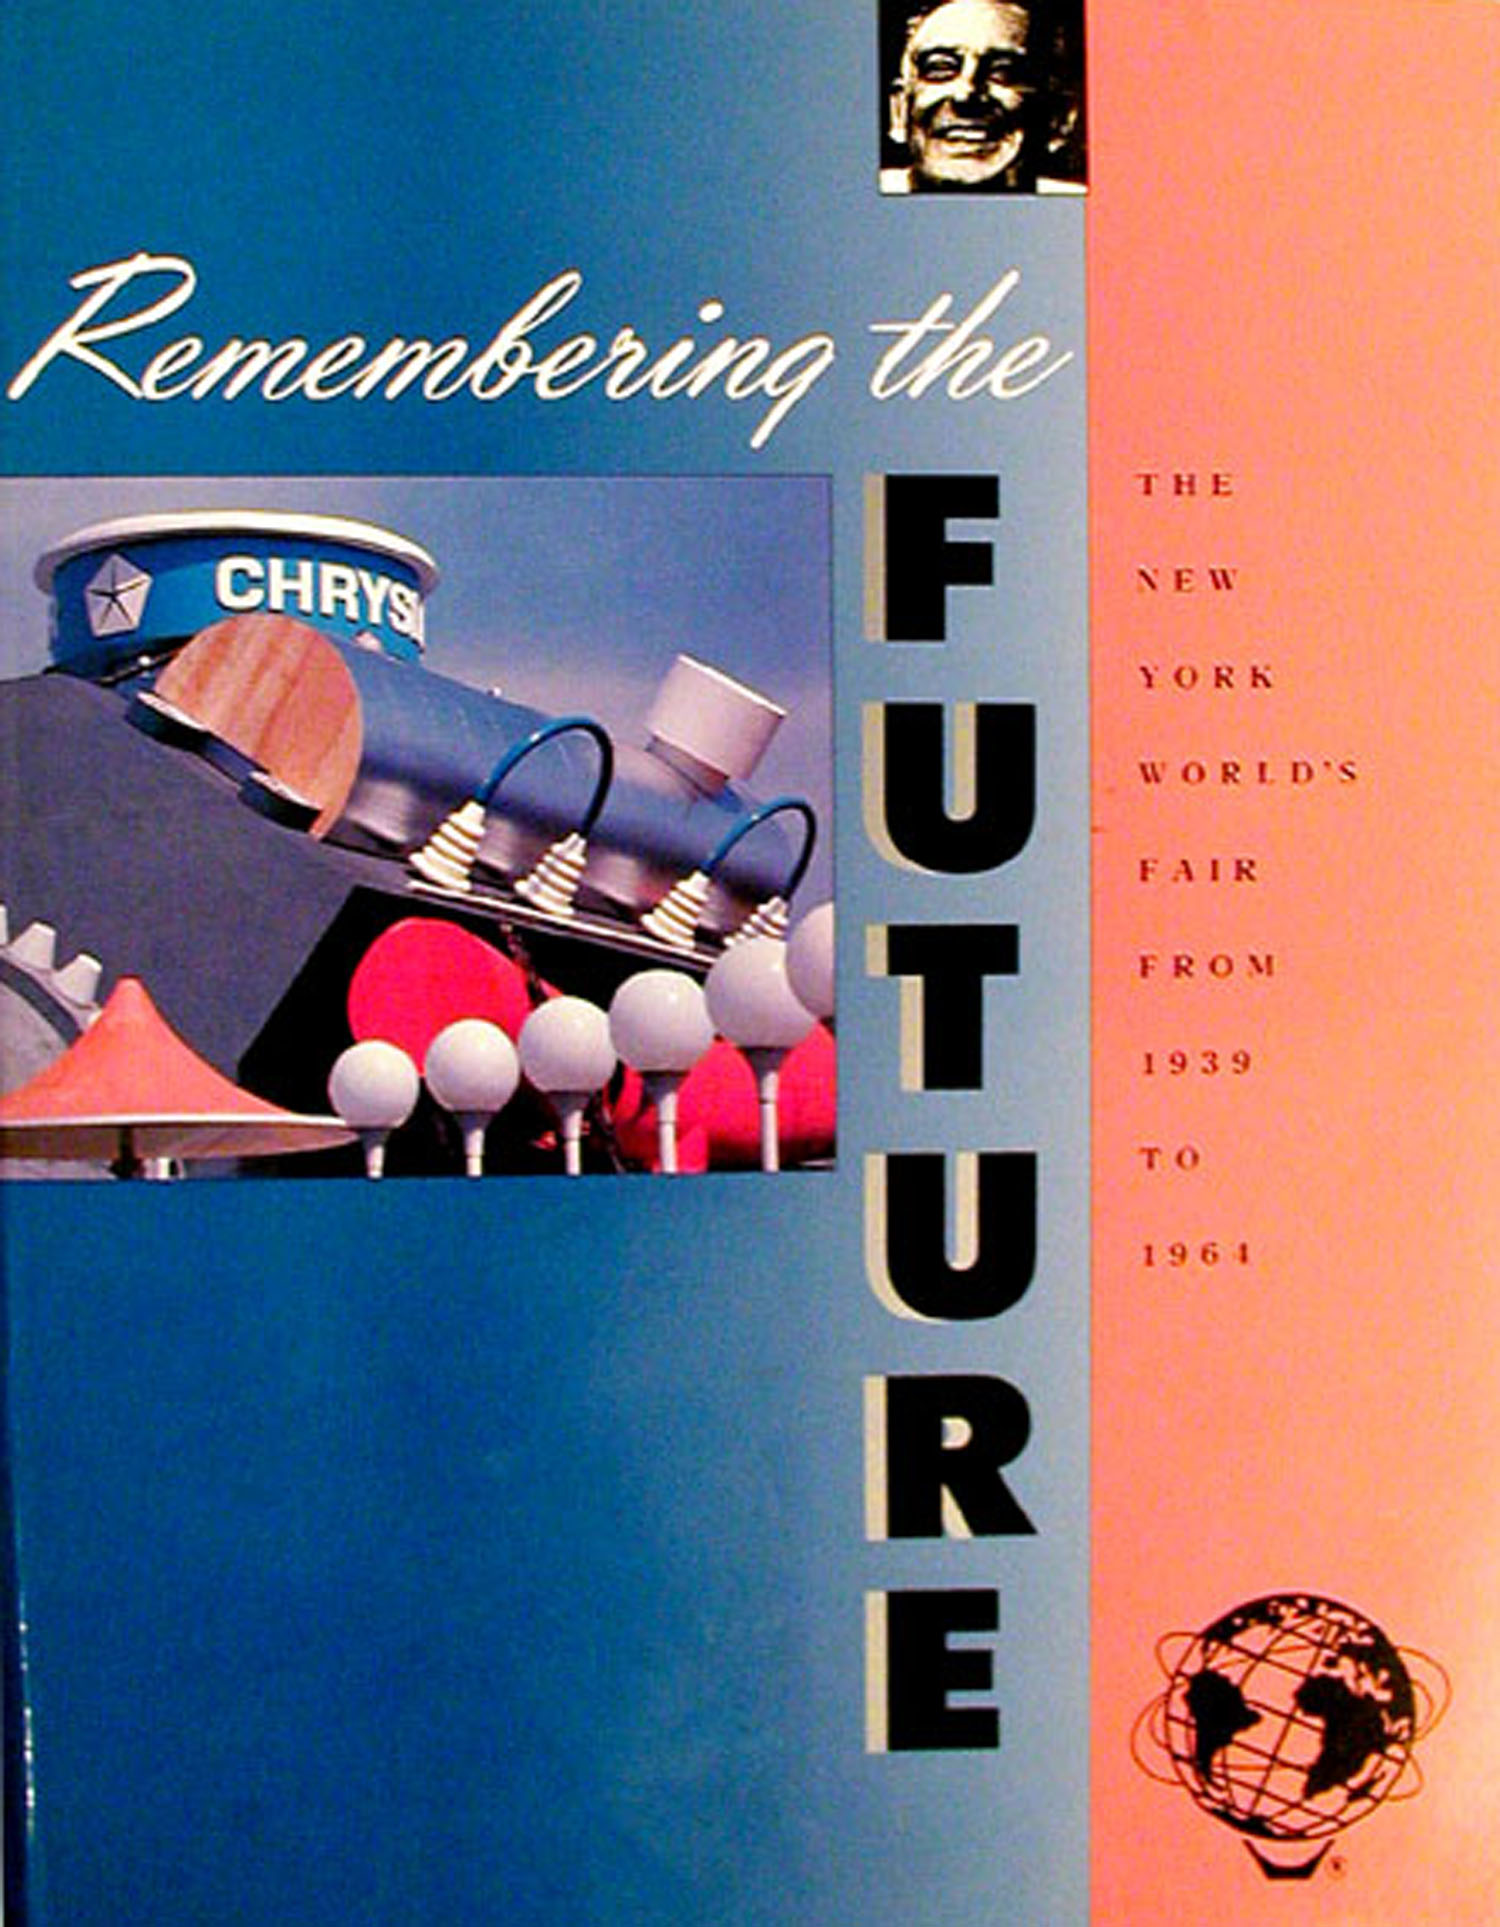 "For the World's Fair anniversaries, the Queens Museum mounted the exhibition ""Remembering the Future: The New York World's Fair from 1939 to 1964."" The ambitious catalogue, published by Rizzoli International, featured essays by Robert Rosenblum, Morris Dickstein, Sheldon J. Reaven, Rosemarie Haag Bletter, Helen A. Harrison, Ileen Sheppard, and Marc H Miller."